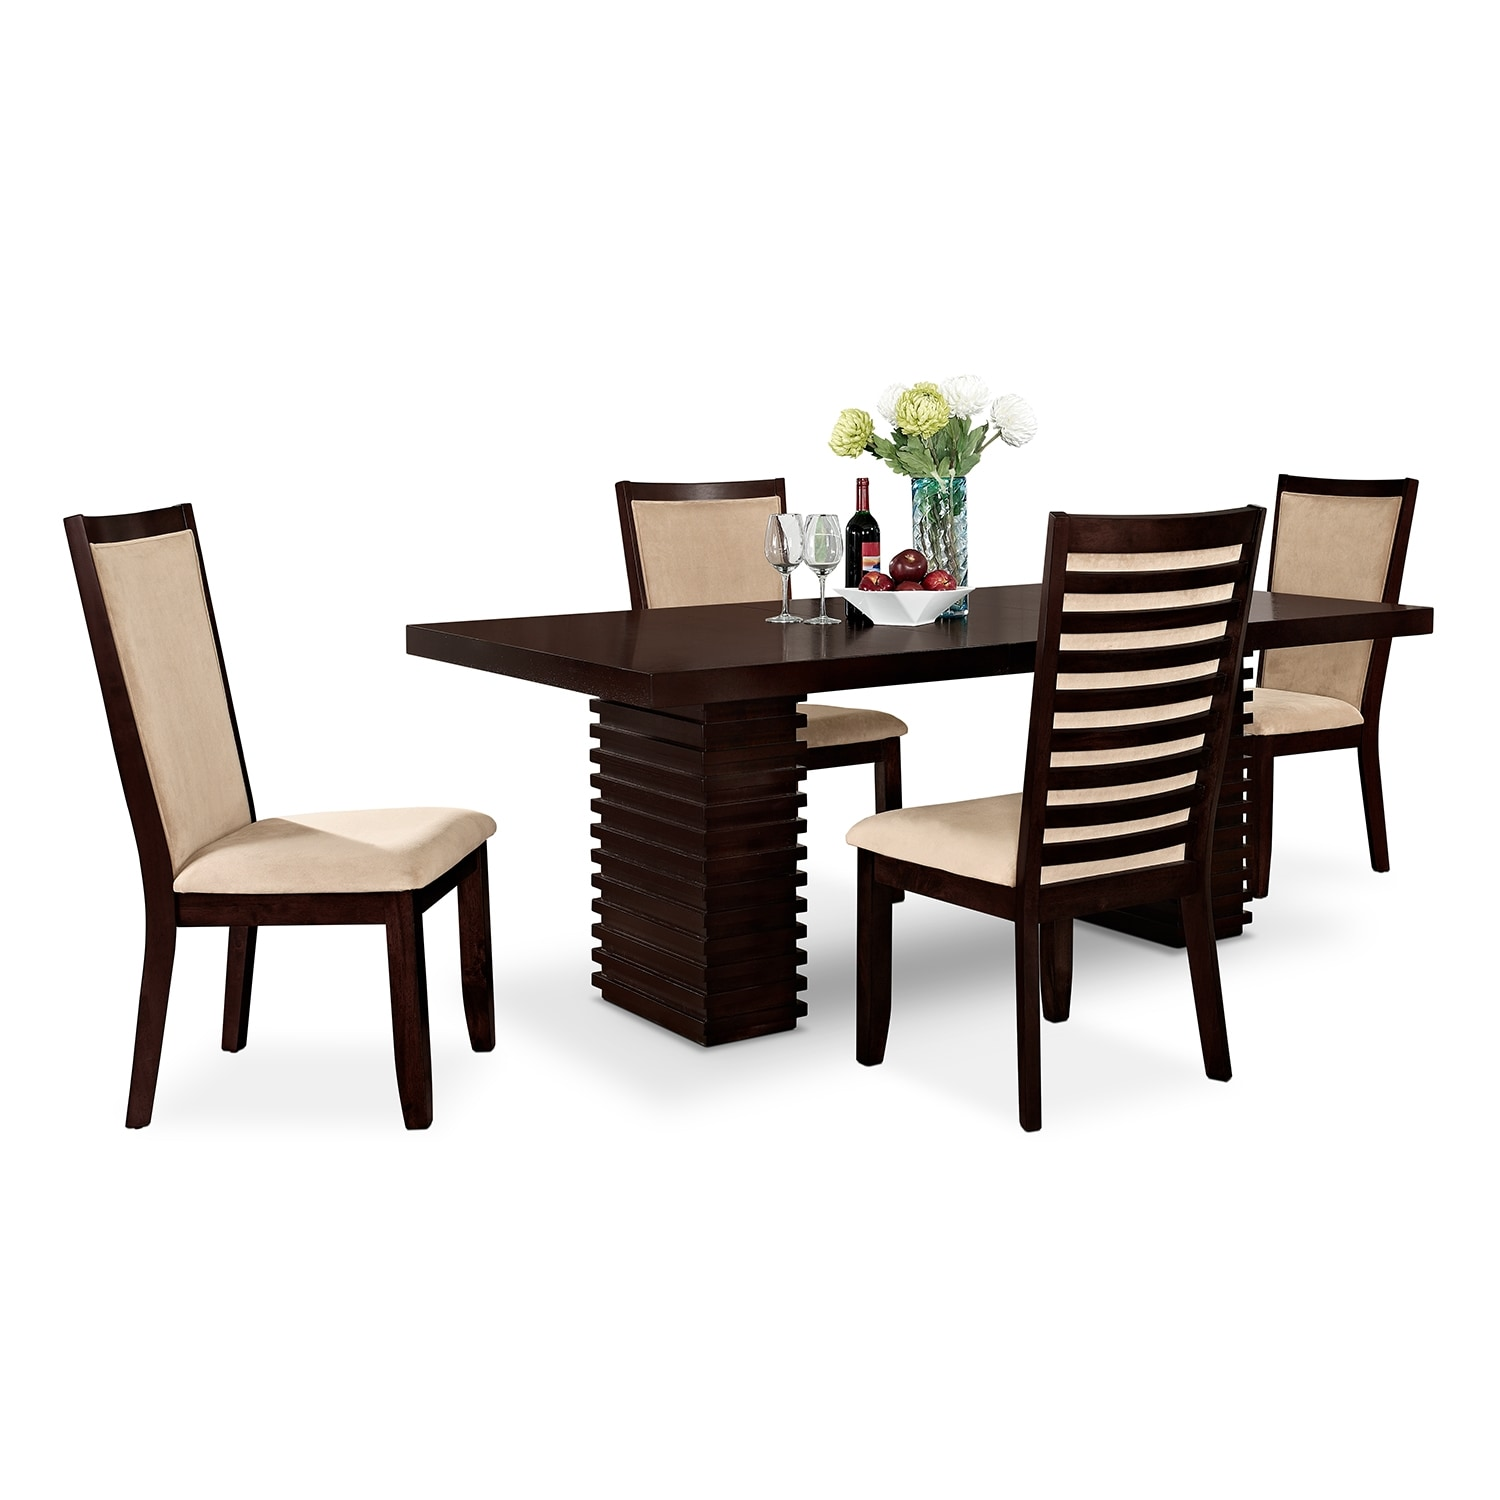 Dining Room Furniture - Paragon Table and 4 Chairs - Merlot and Camel